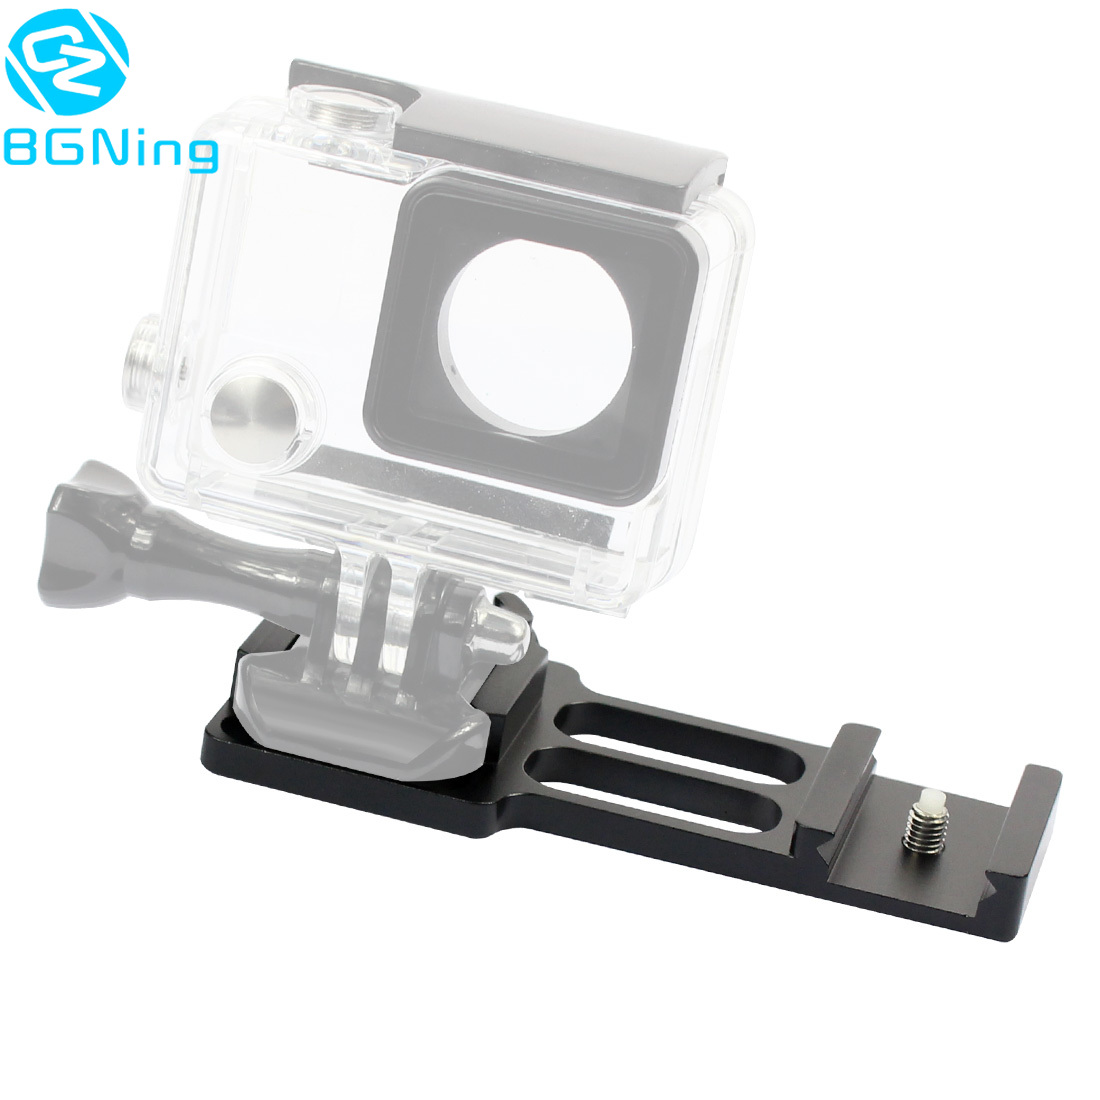 Upgraded CNC Aluminum 20mm Gun Side Rail Mount For Gopro Xiaoyi Gitup Sport Action Camera For Hunters Airsoft Player Spare Parts